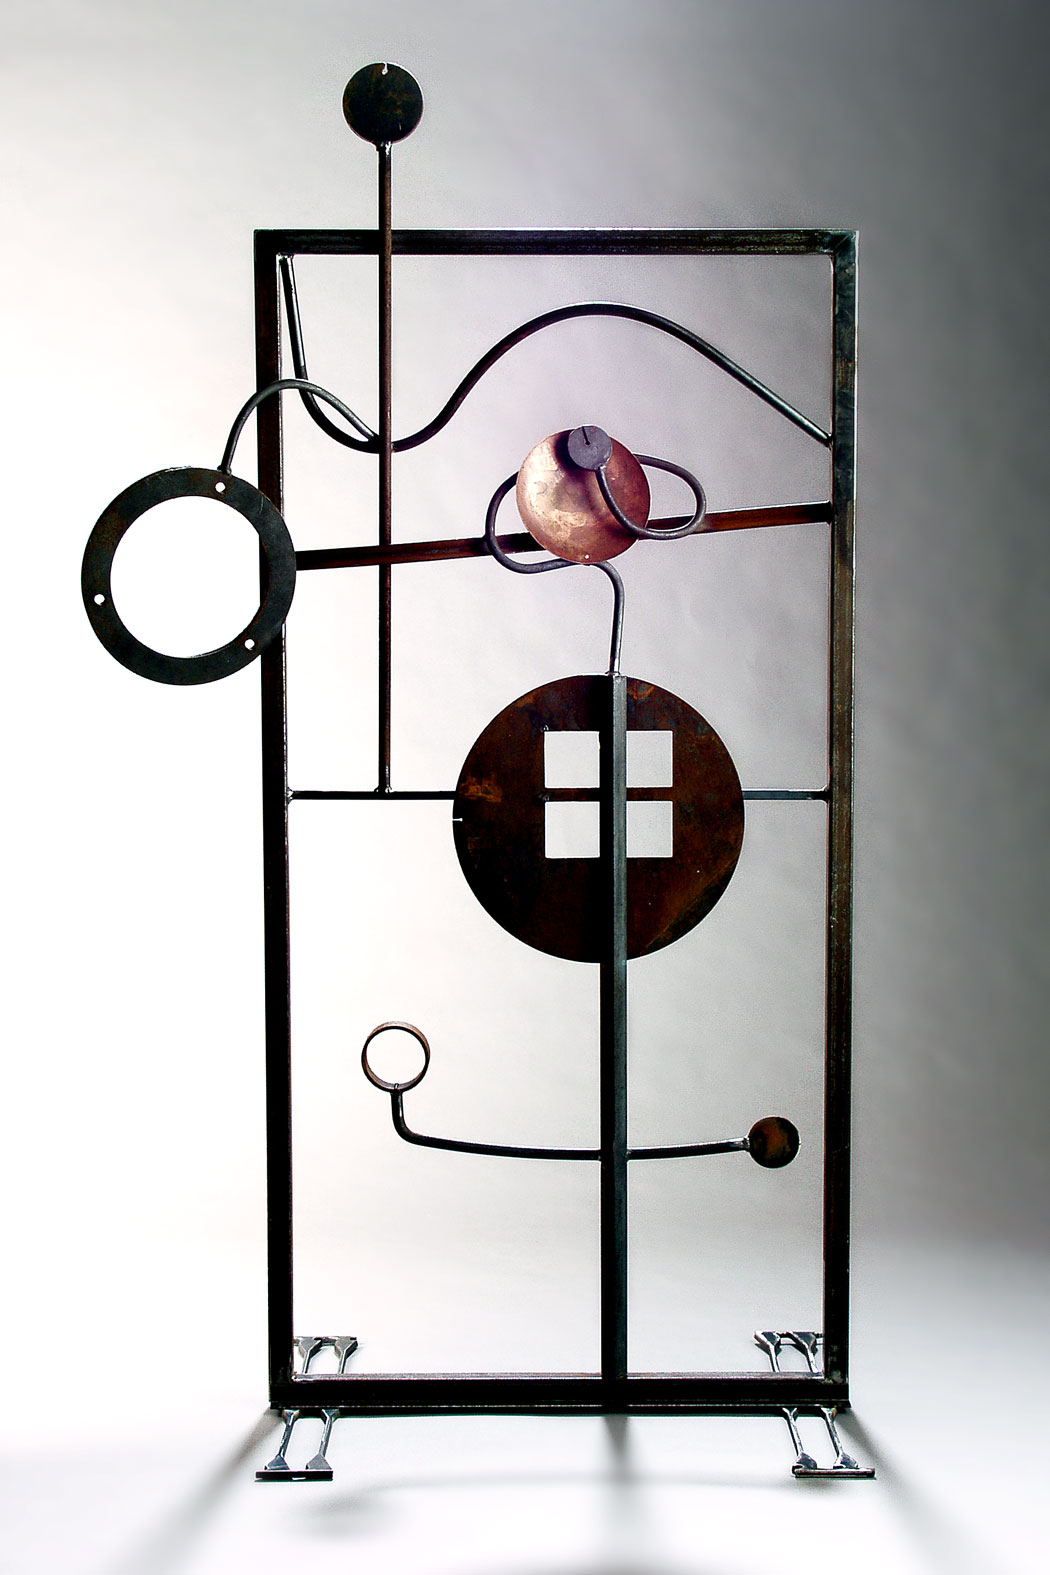 Abstract Art Nouveau Garden Screen, 2004